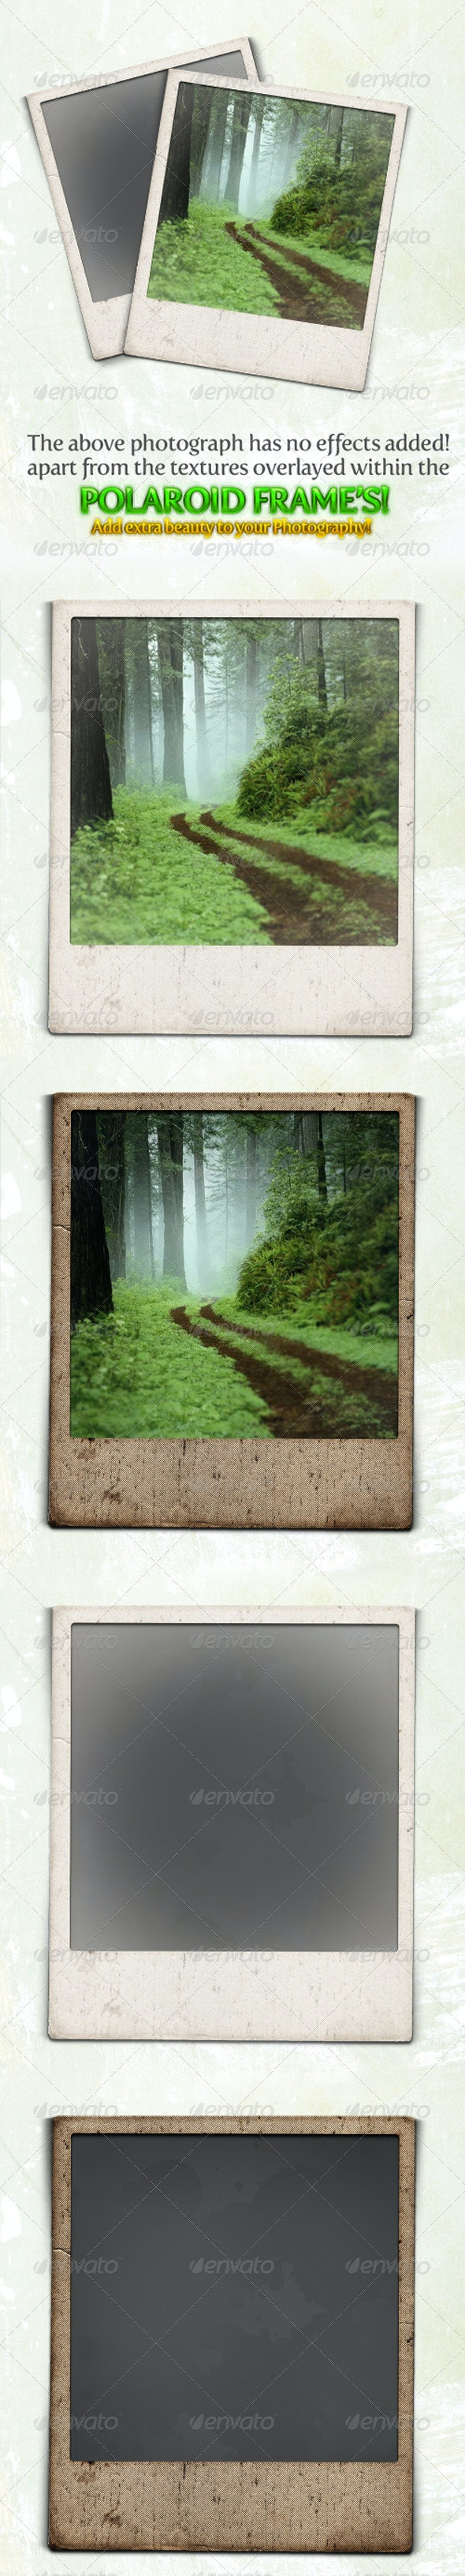 Gritty and Modern Polaroid Photo Frames - Nature Photo Templates